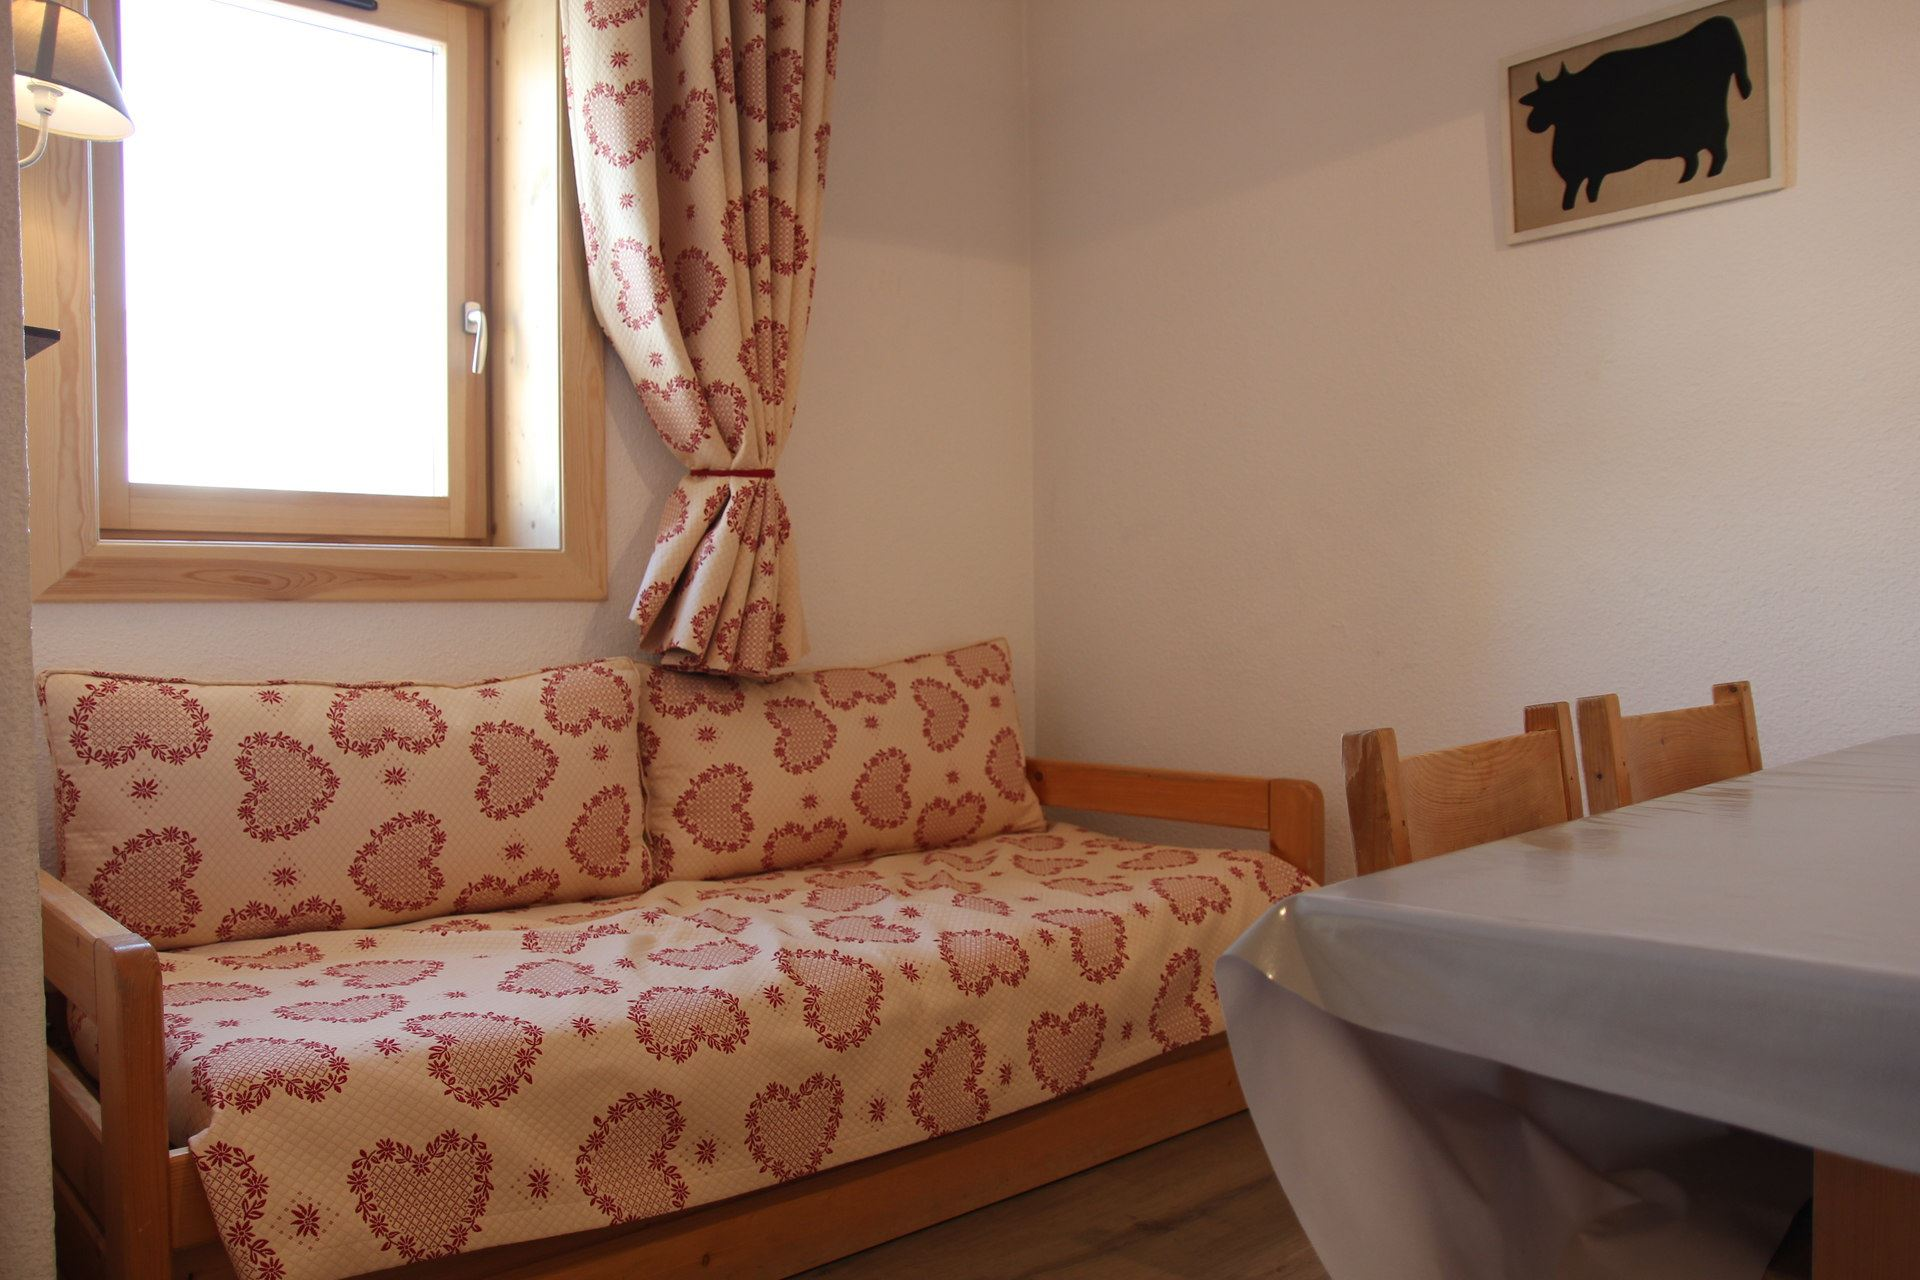 ARCELLE 403 / 2 ROOMS 4 PERSONS - 1 BRONZE SNOWFLAKES - CI